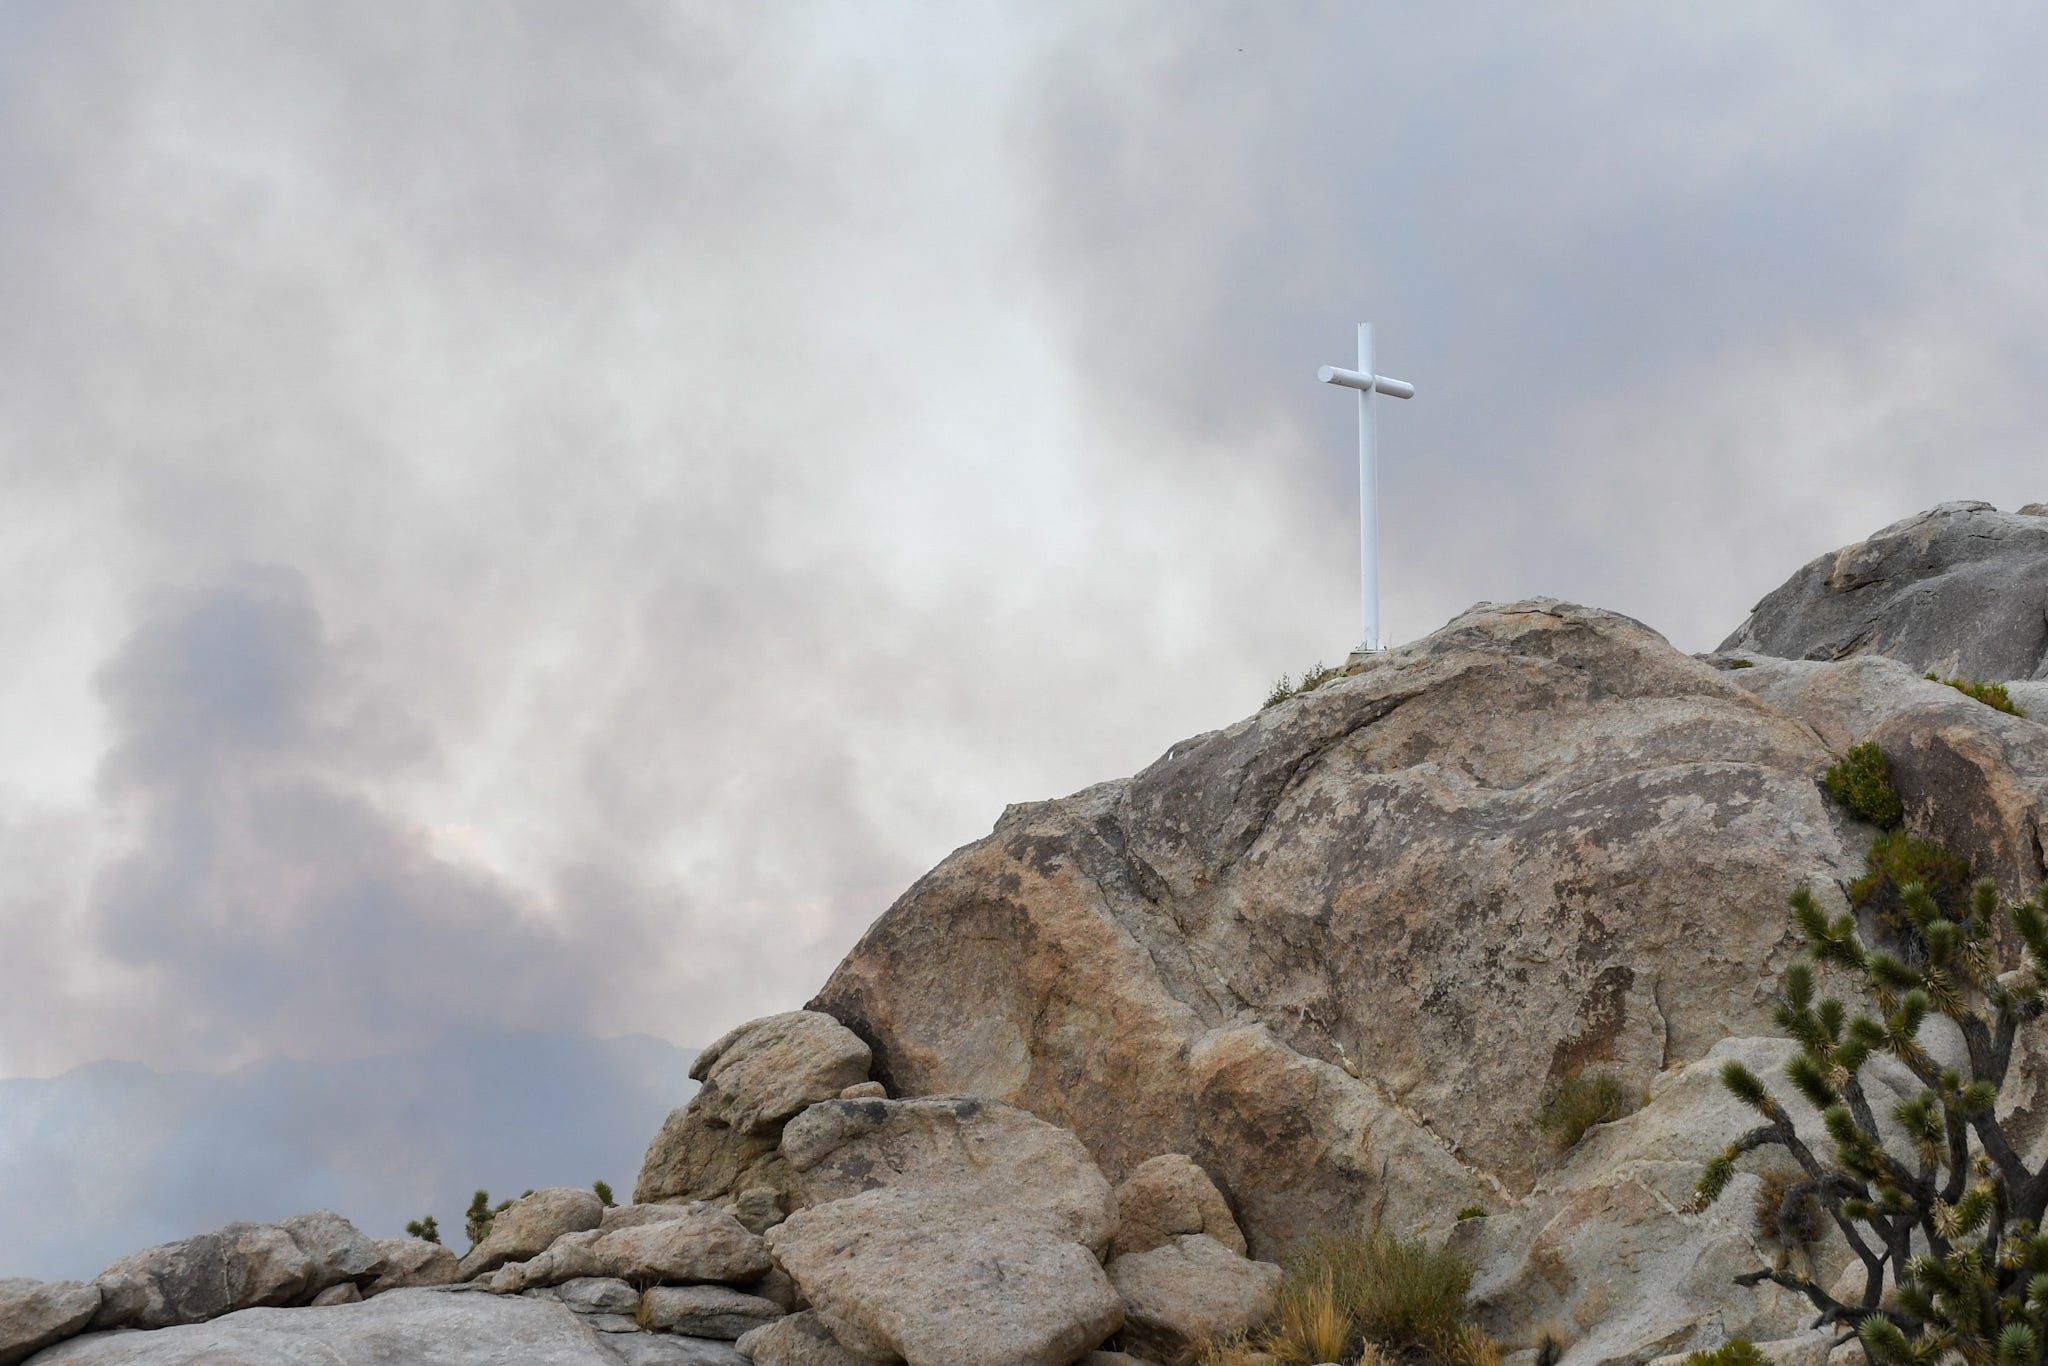 Smoke from the Dome Fire rises around the Mojave Cross in the national preserve on Aug. 17, 2020.